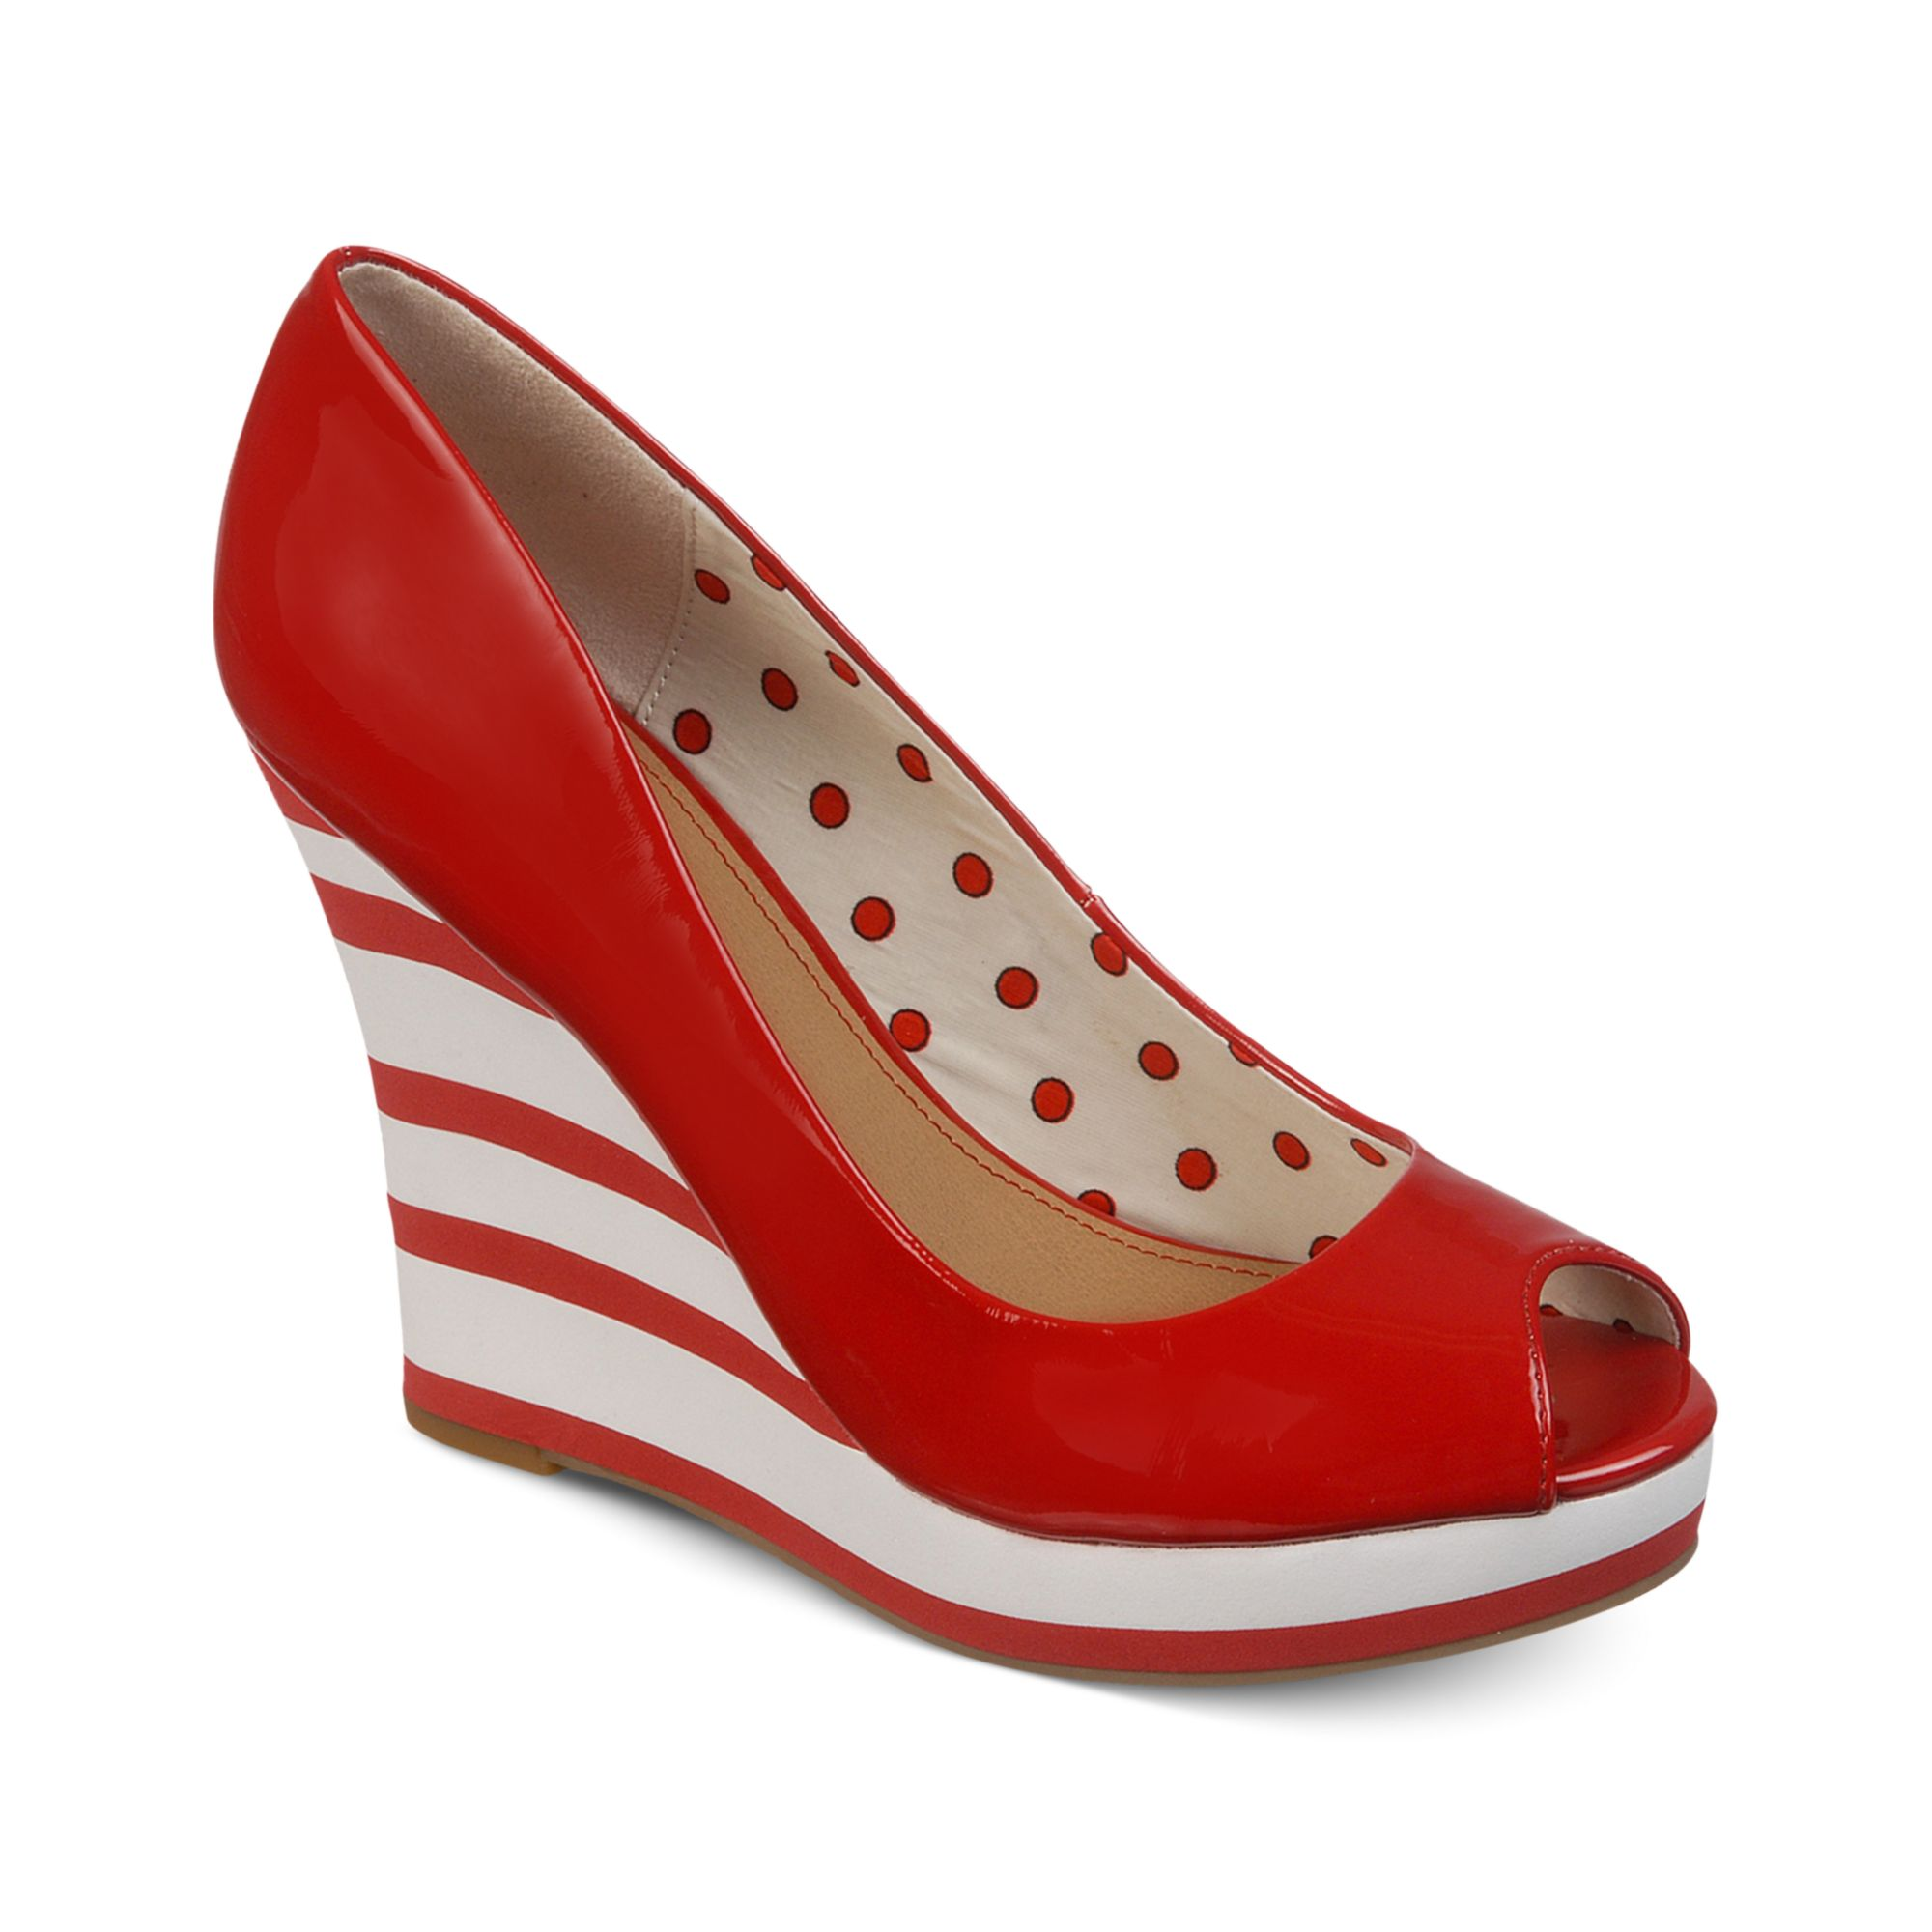 Lyst - Fergie Fergalicious Shoes Untold Platform Wedges in Red Fergie Shoes